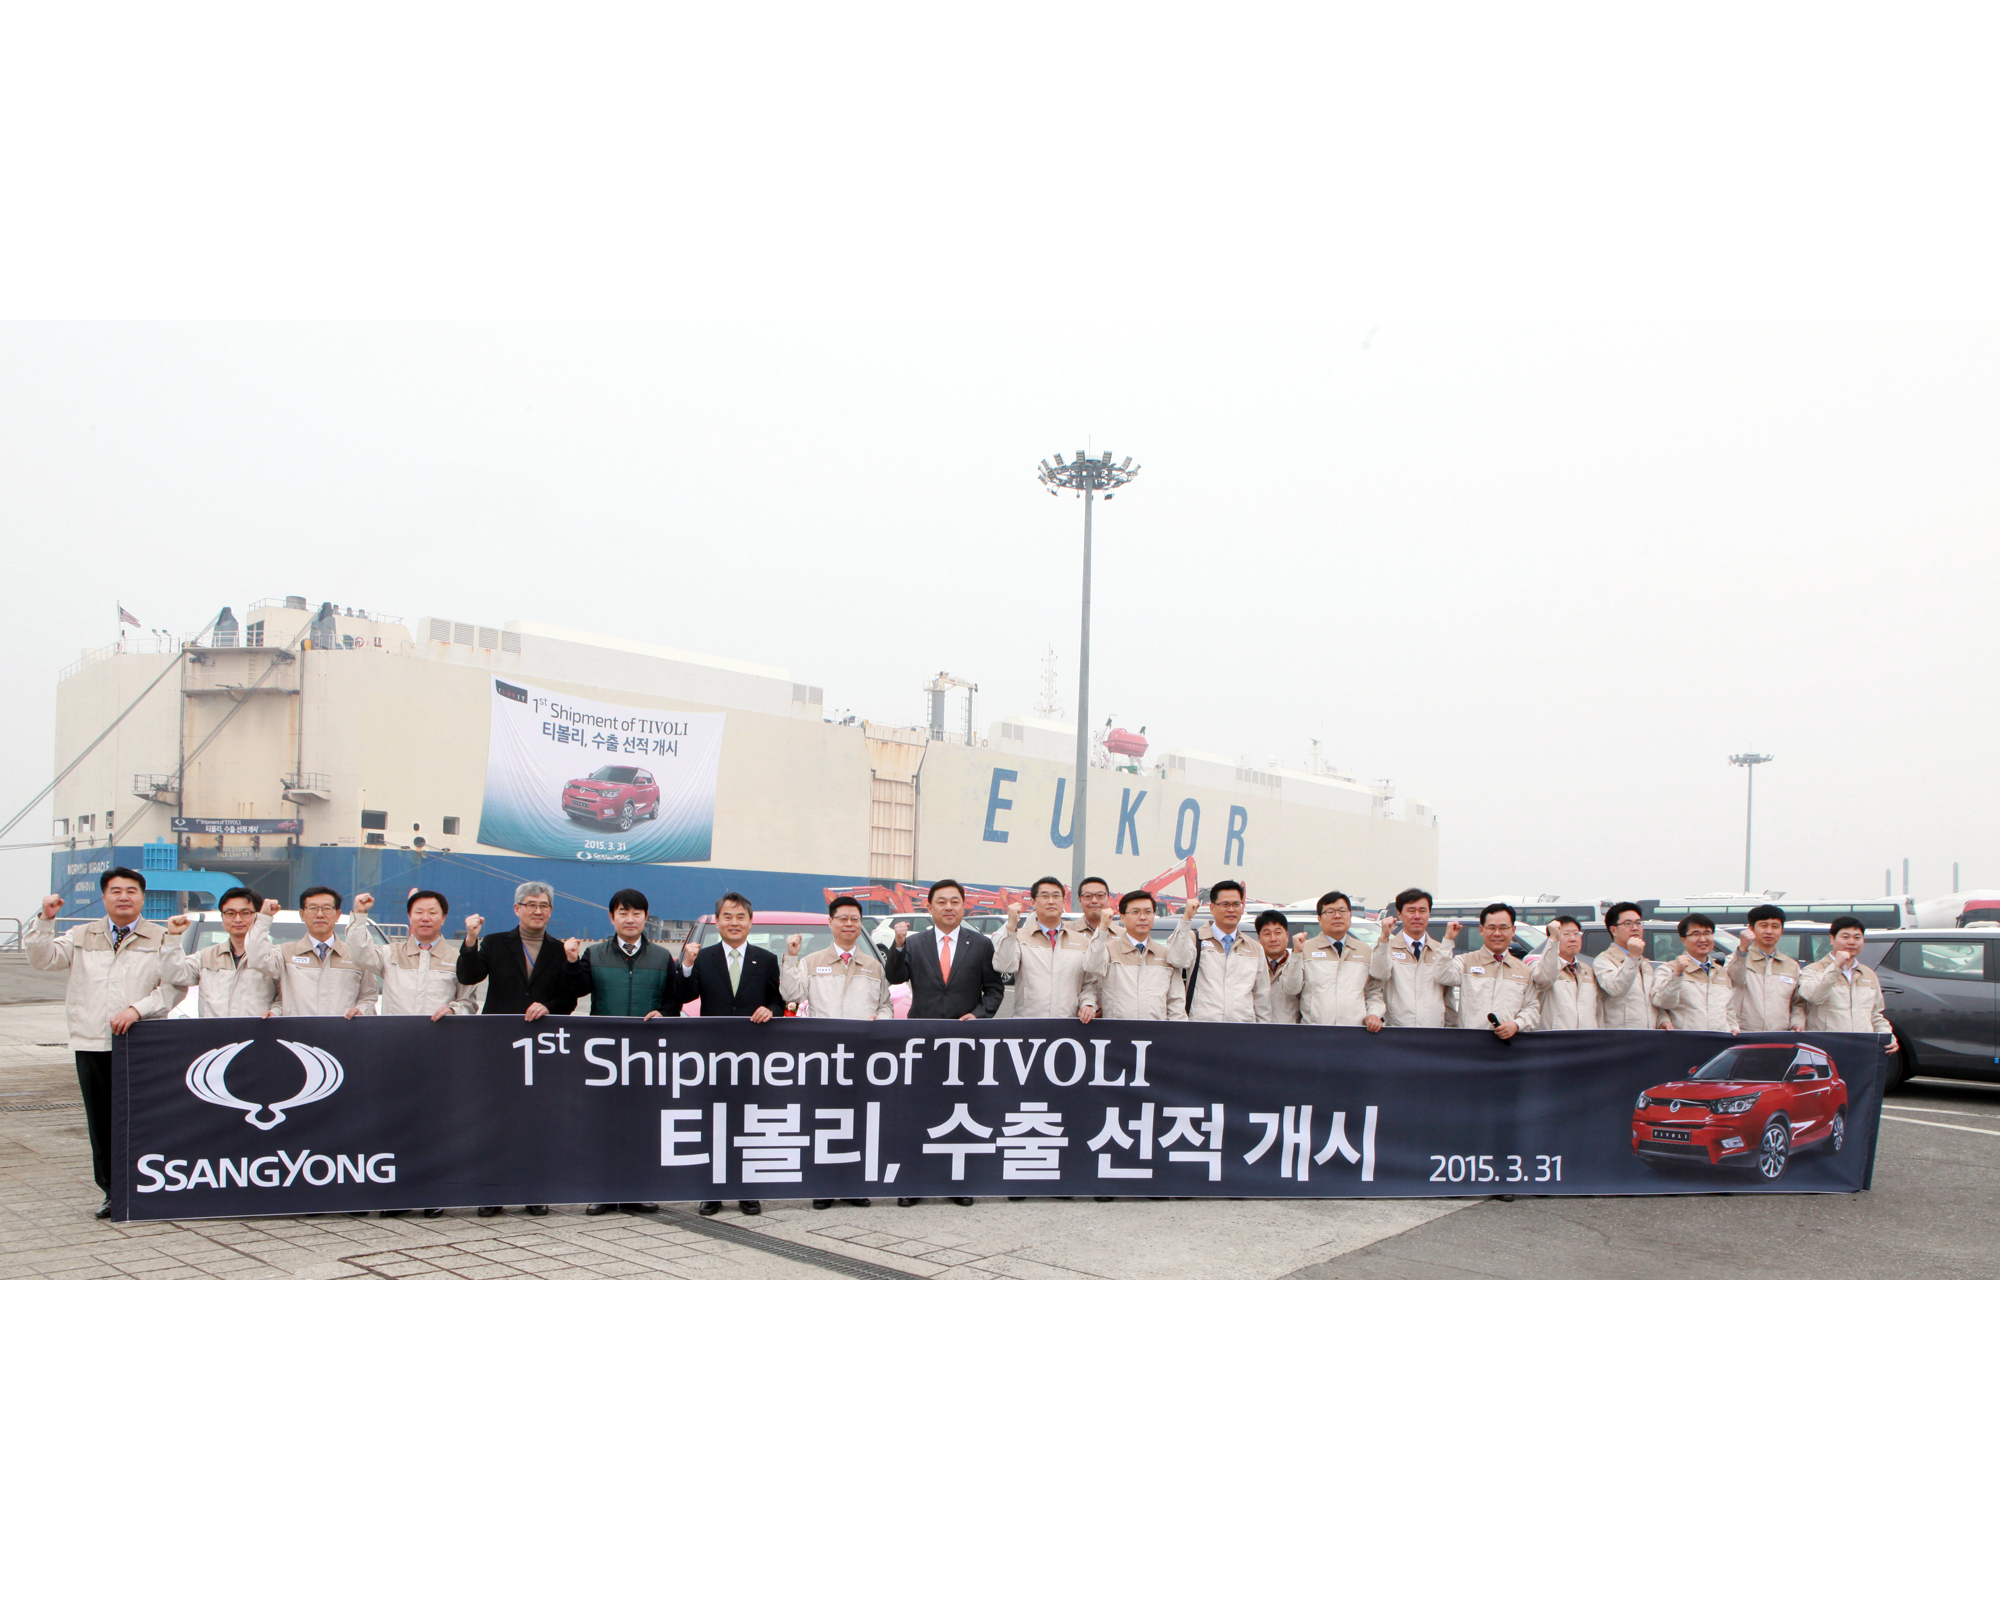 Ssangyong staff, including Head of Export HQ Seol Dong-cheol (8th from left), celebrate the first shipments of Ssangyong autos to the E.U. on March 31.